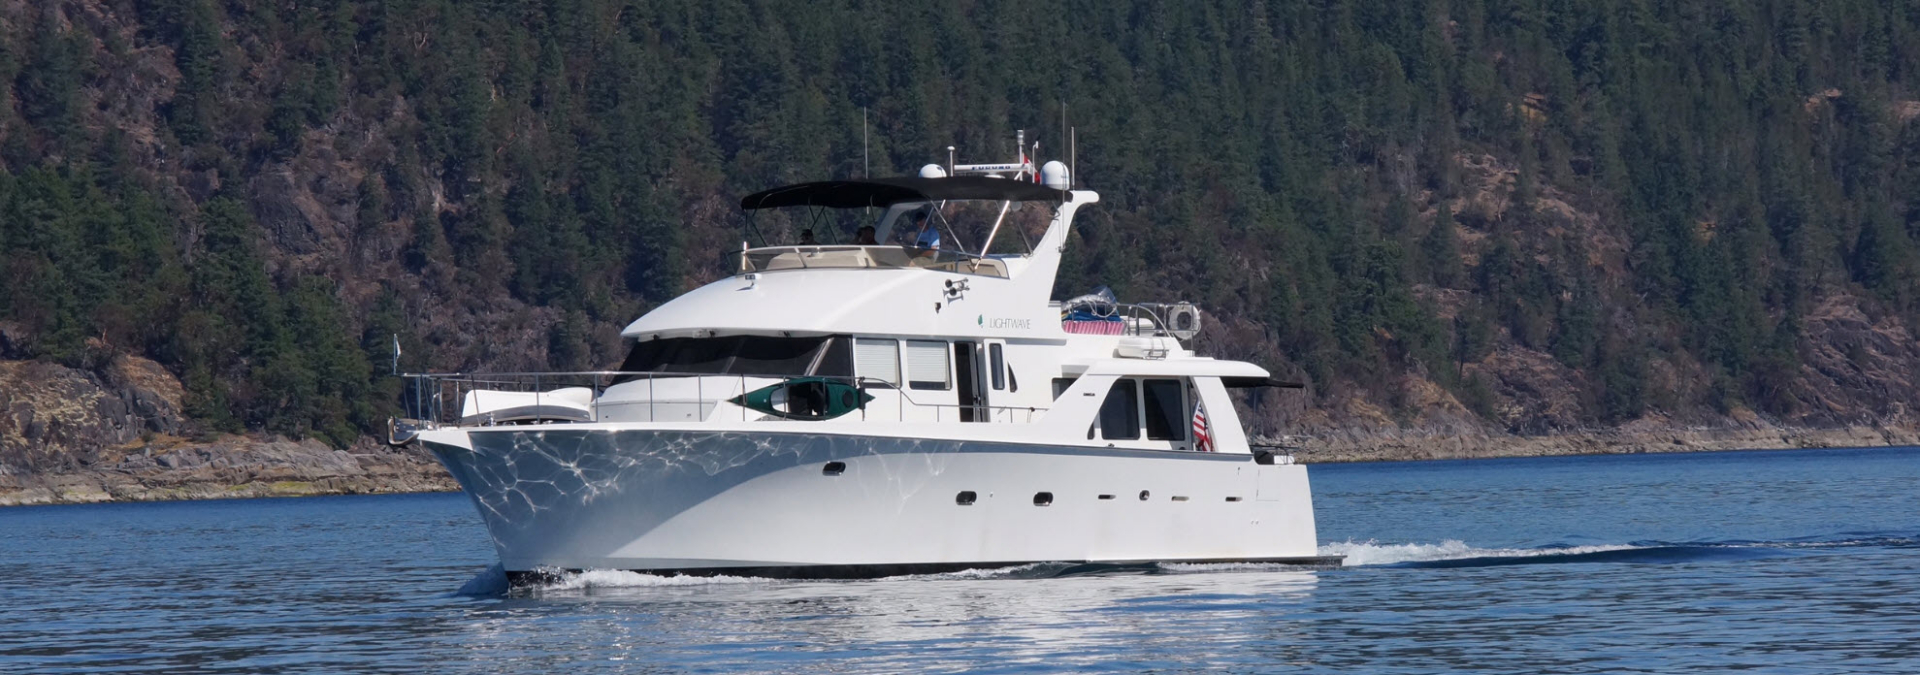 Used Pilothouse Boats And Yachts For Sale | United